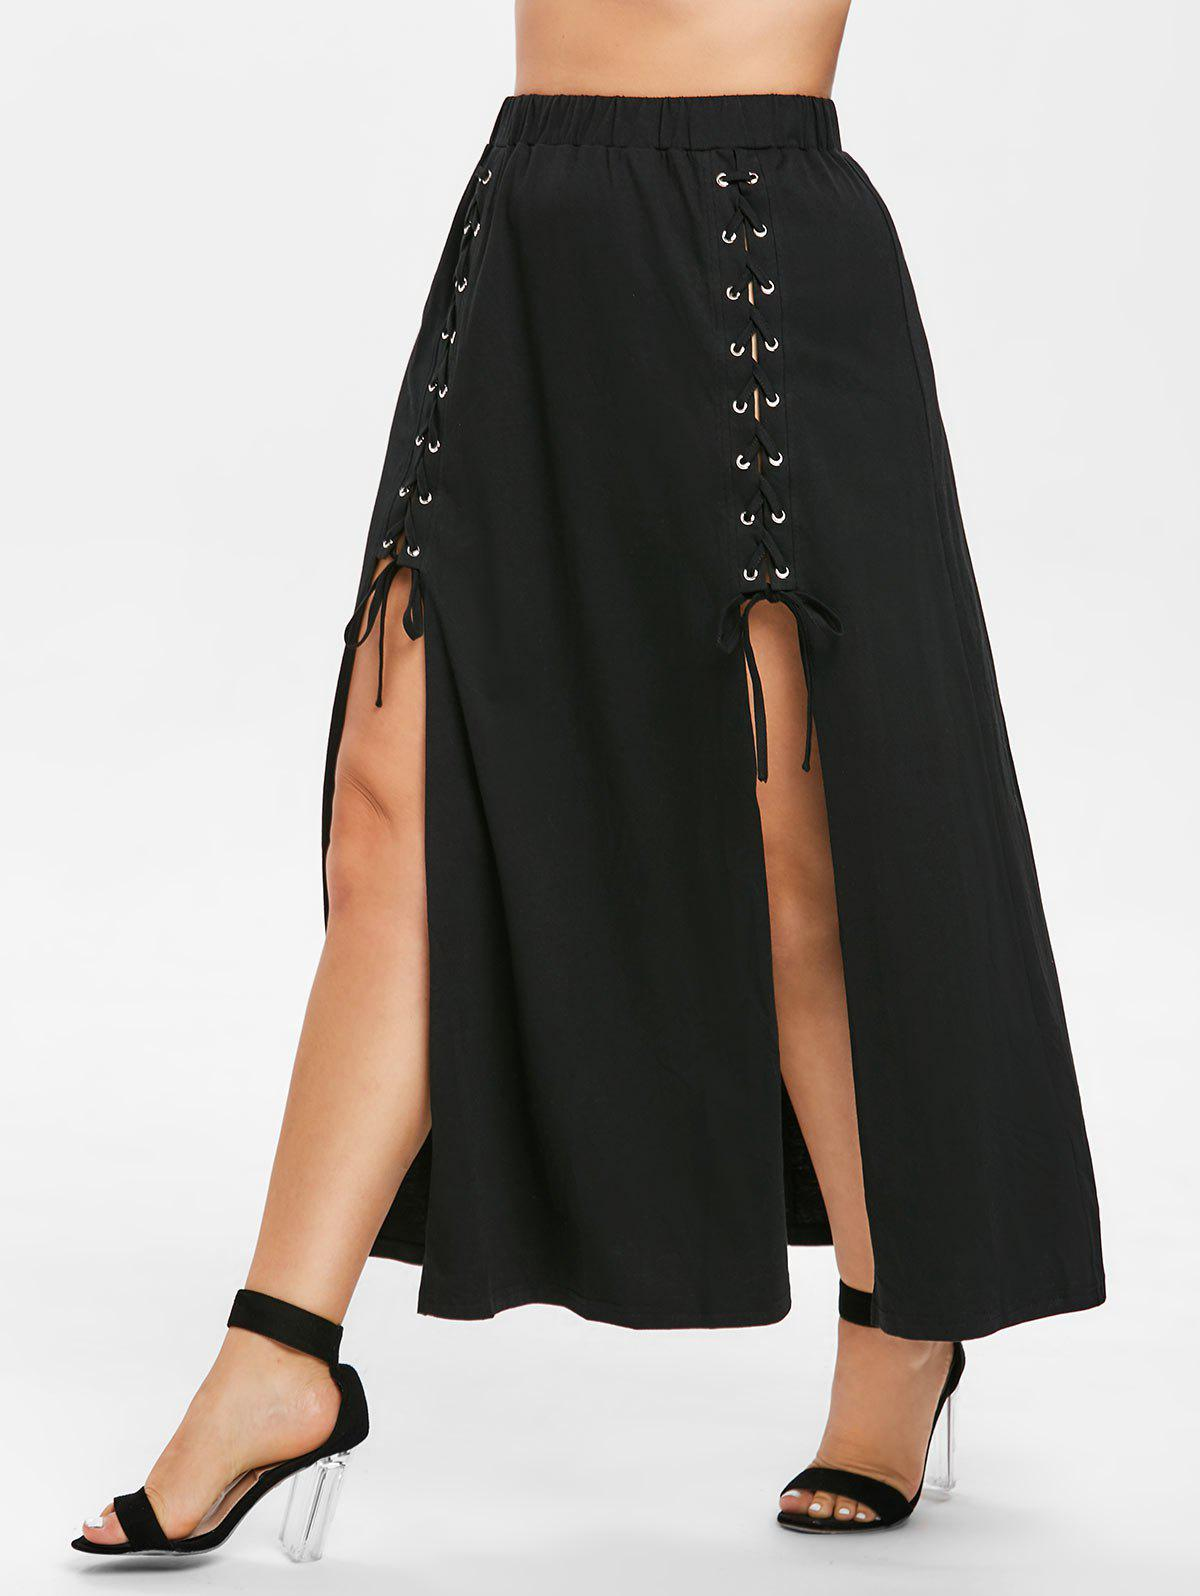 31bf2192d27 36% OFF  Front Slit Plus Size Lace Up Skirt